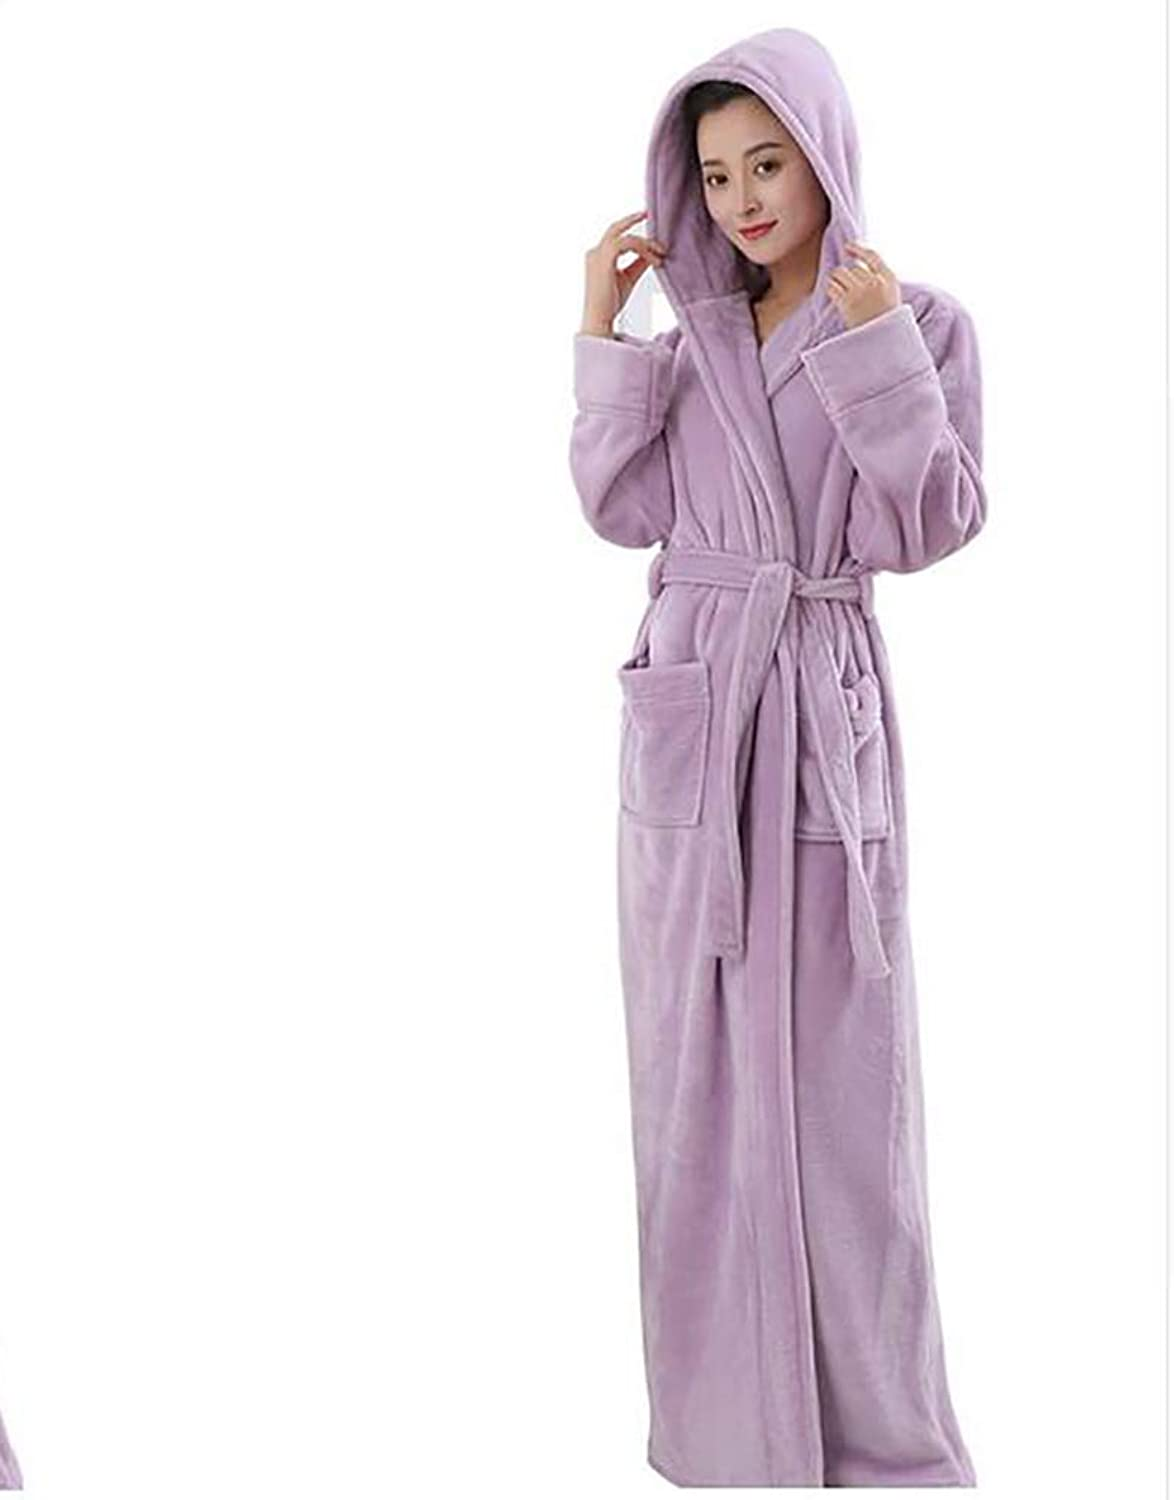 Winter Adult Soft Bathrobe with Hood Women Nightgown Home Clothes Warm Bath Robes Dressing Gowns,M